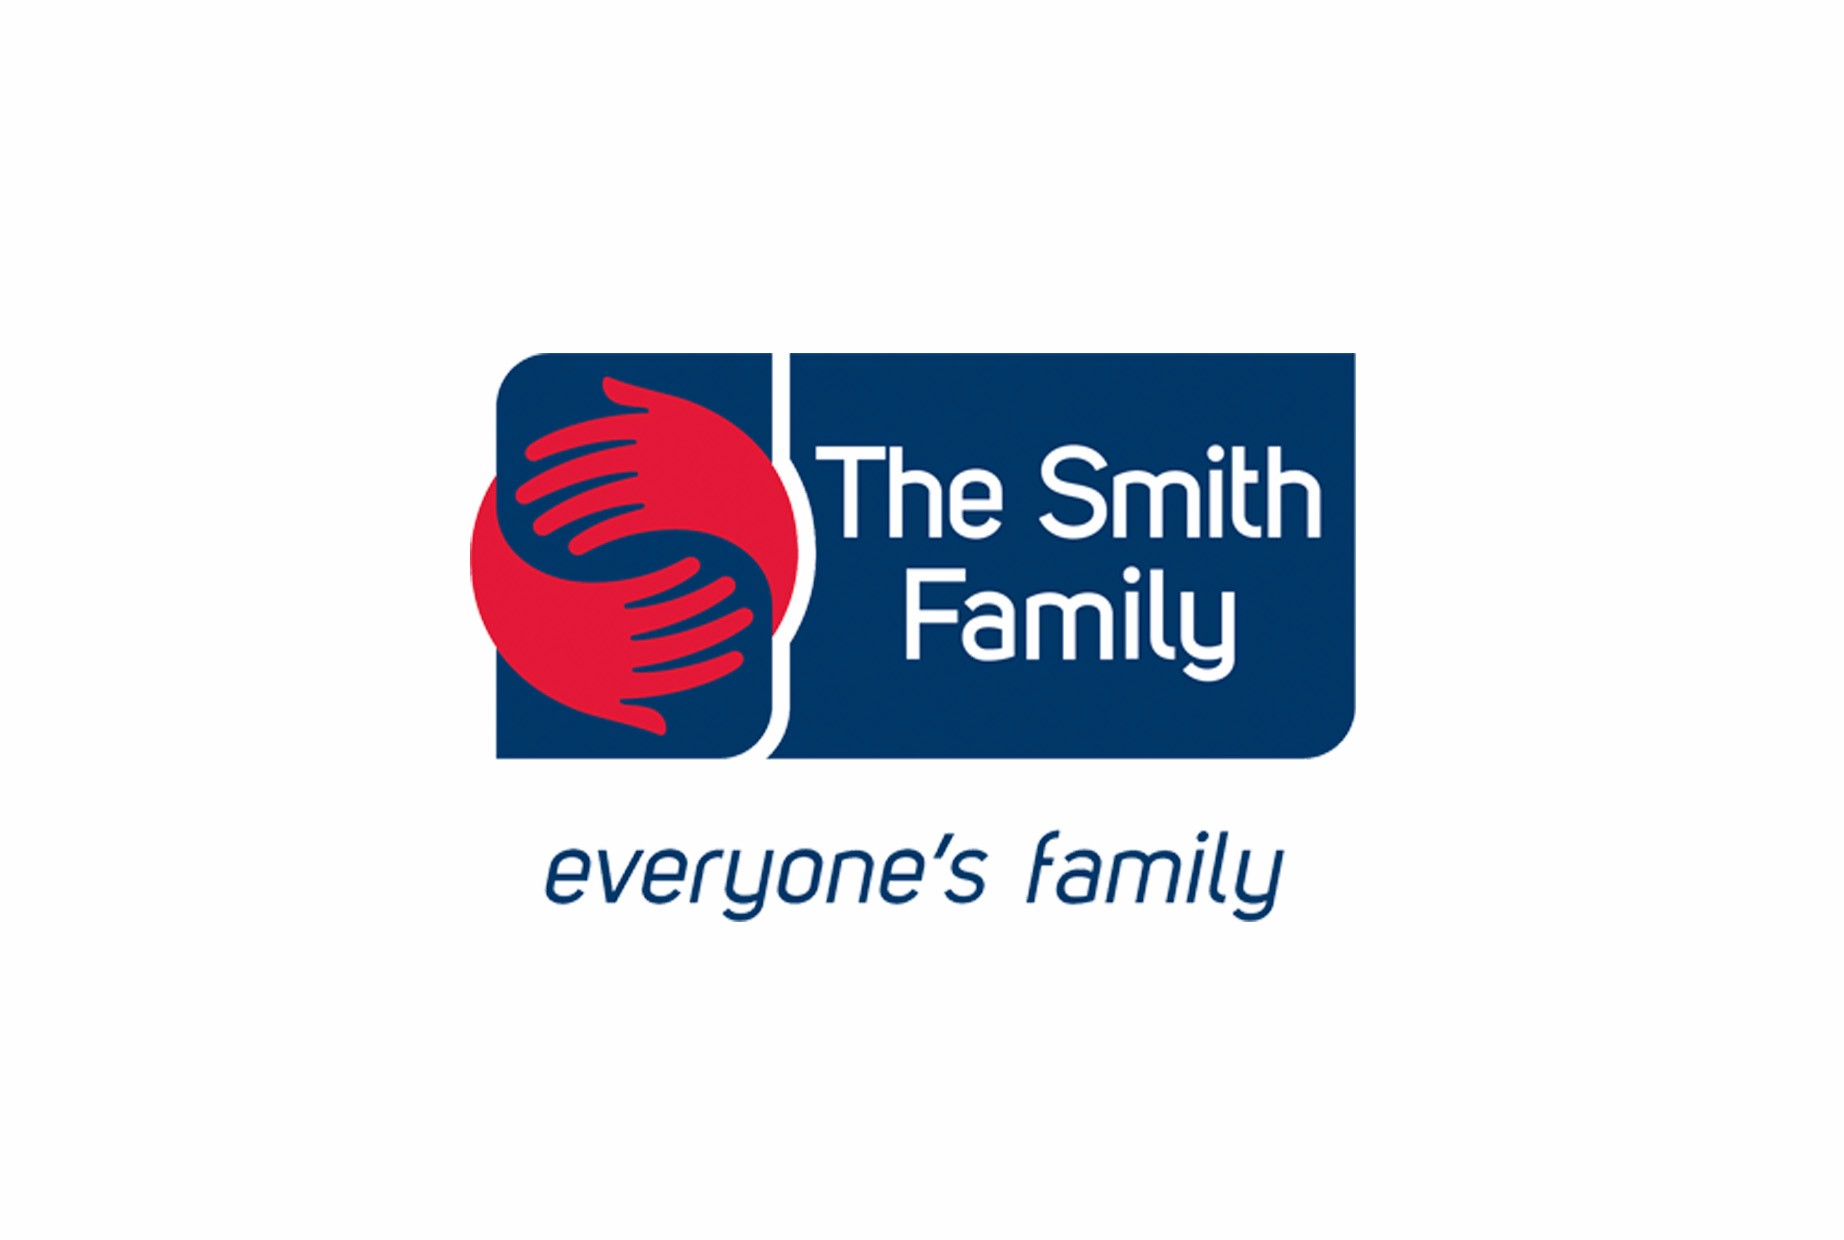 The Smith Family Booth